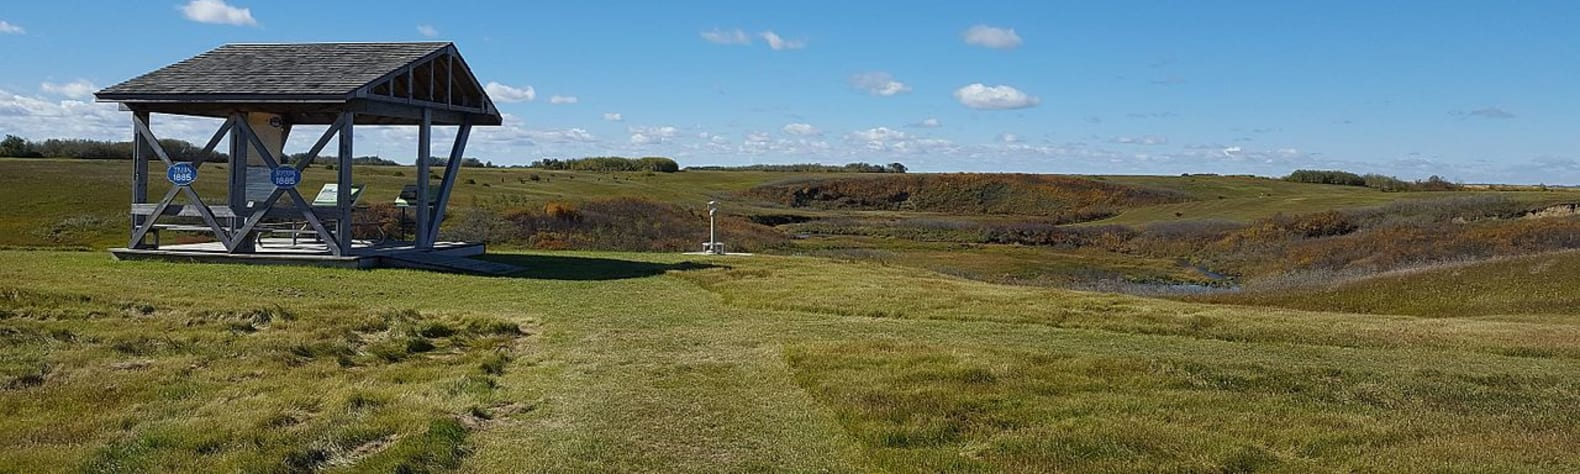 Battle of Tourond's Coulee / Fish Creek National Historic Site